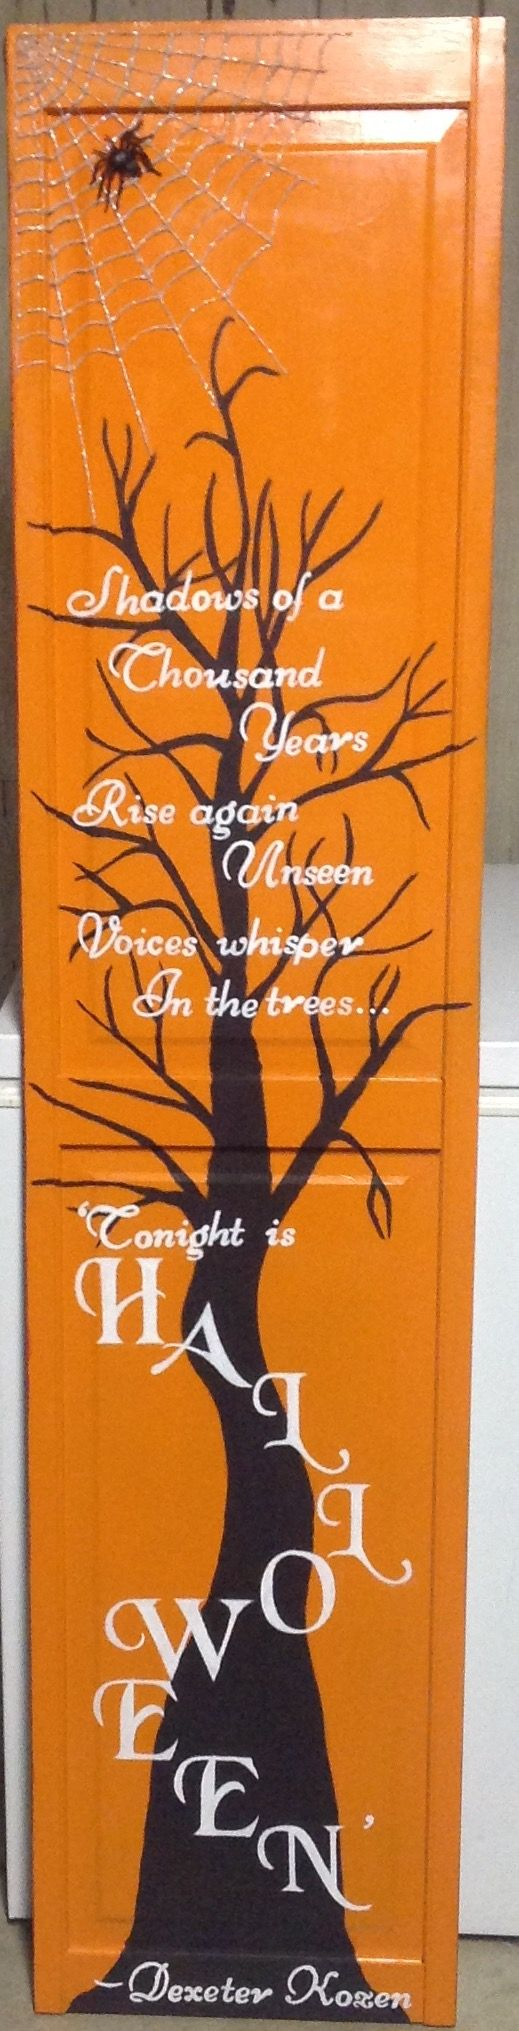 I created this sign from an old door the poem by dexter kozen is